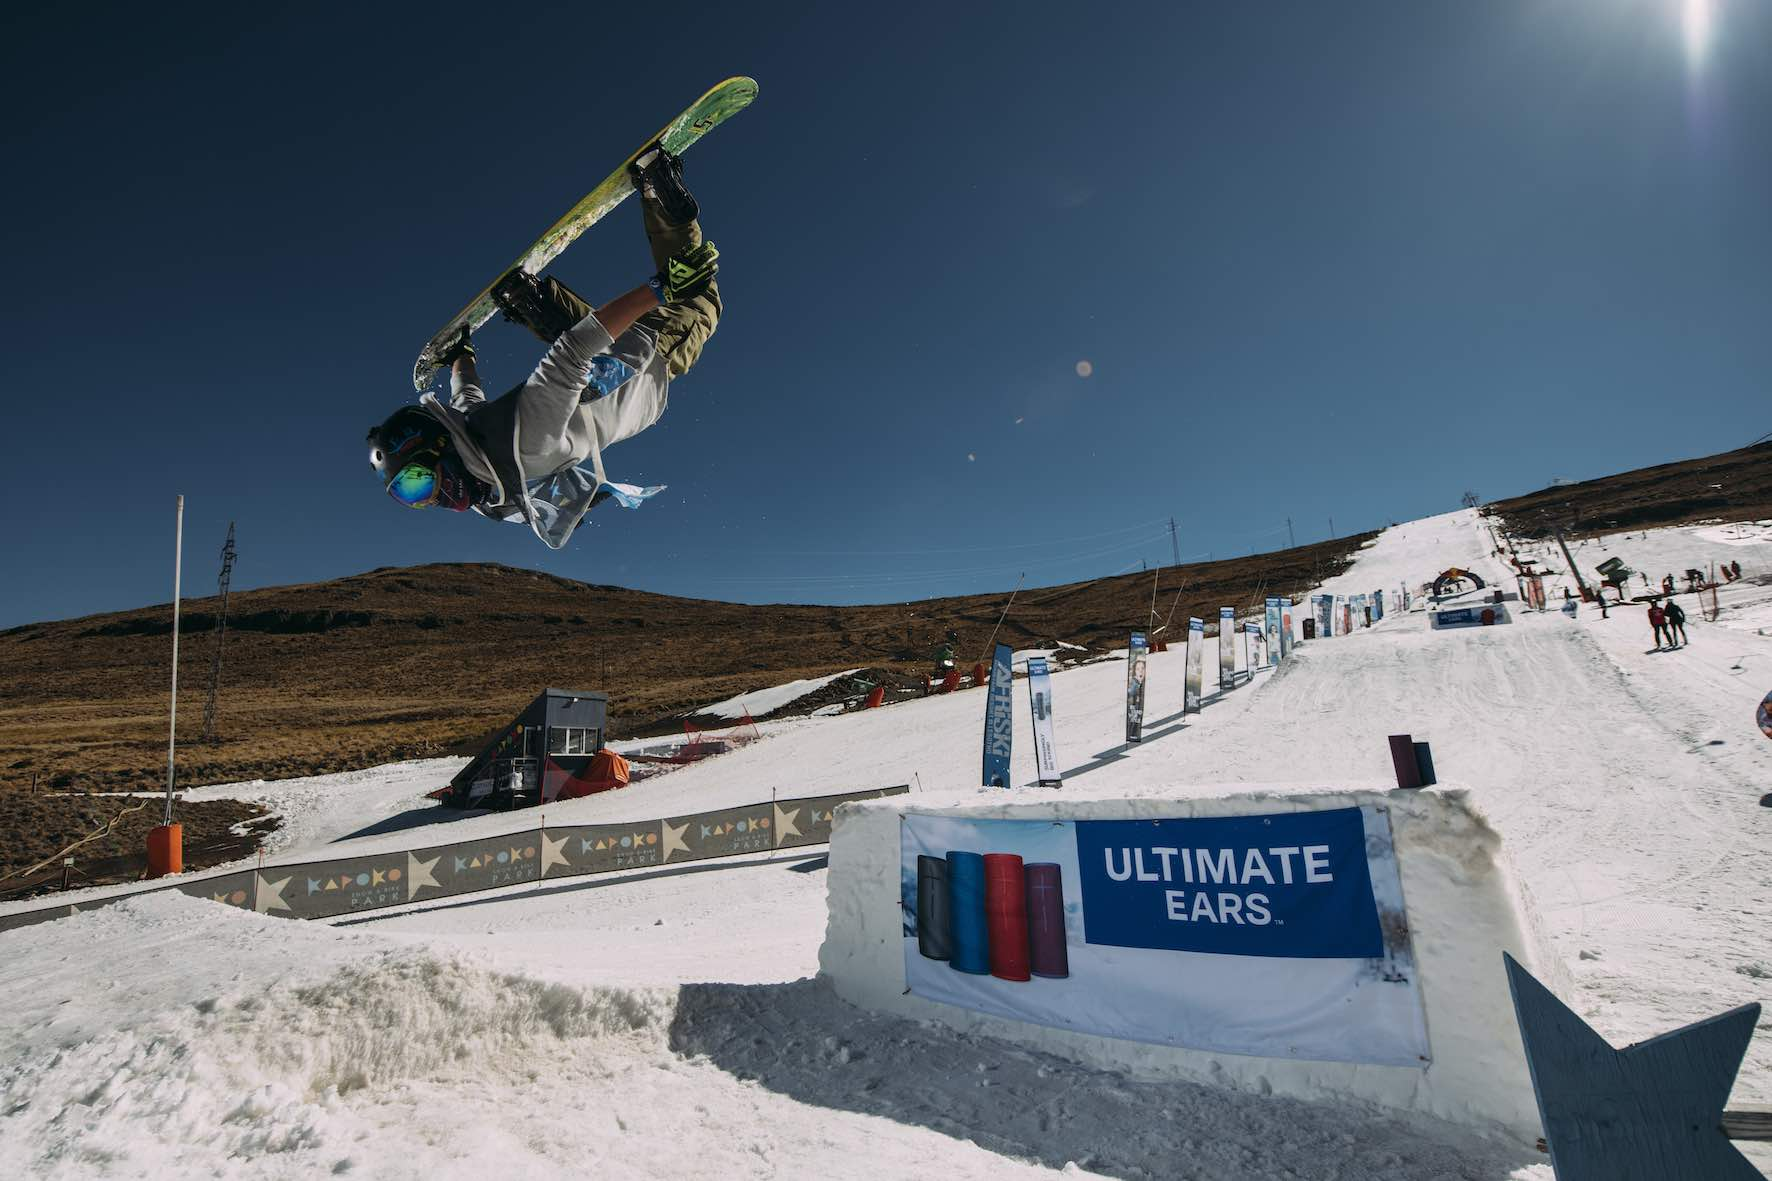 Wesley Schallen snowboarding in the 2019 2019 Ultimate Ears Winter Whip Snowboard and Ski Festival